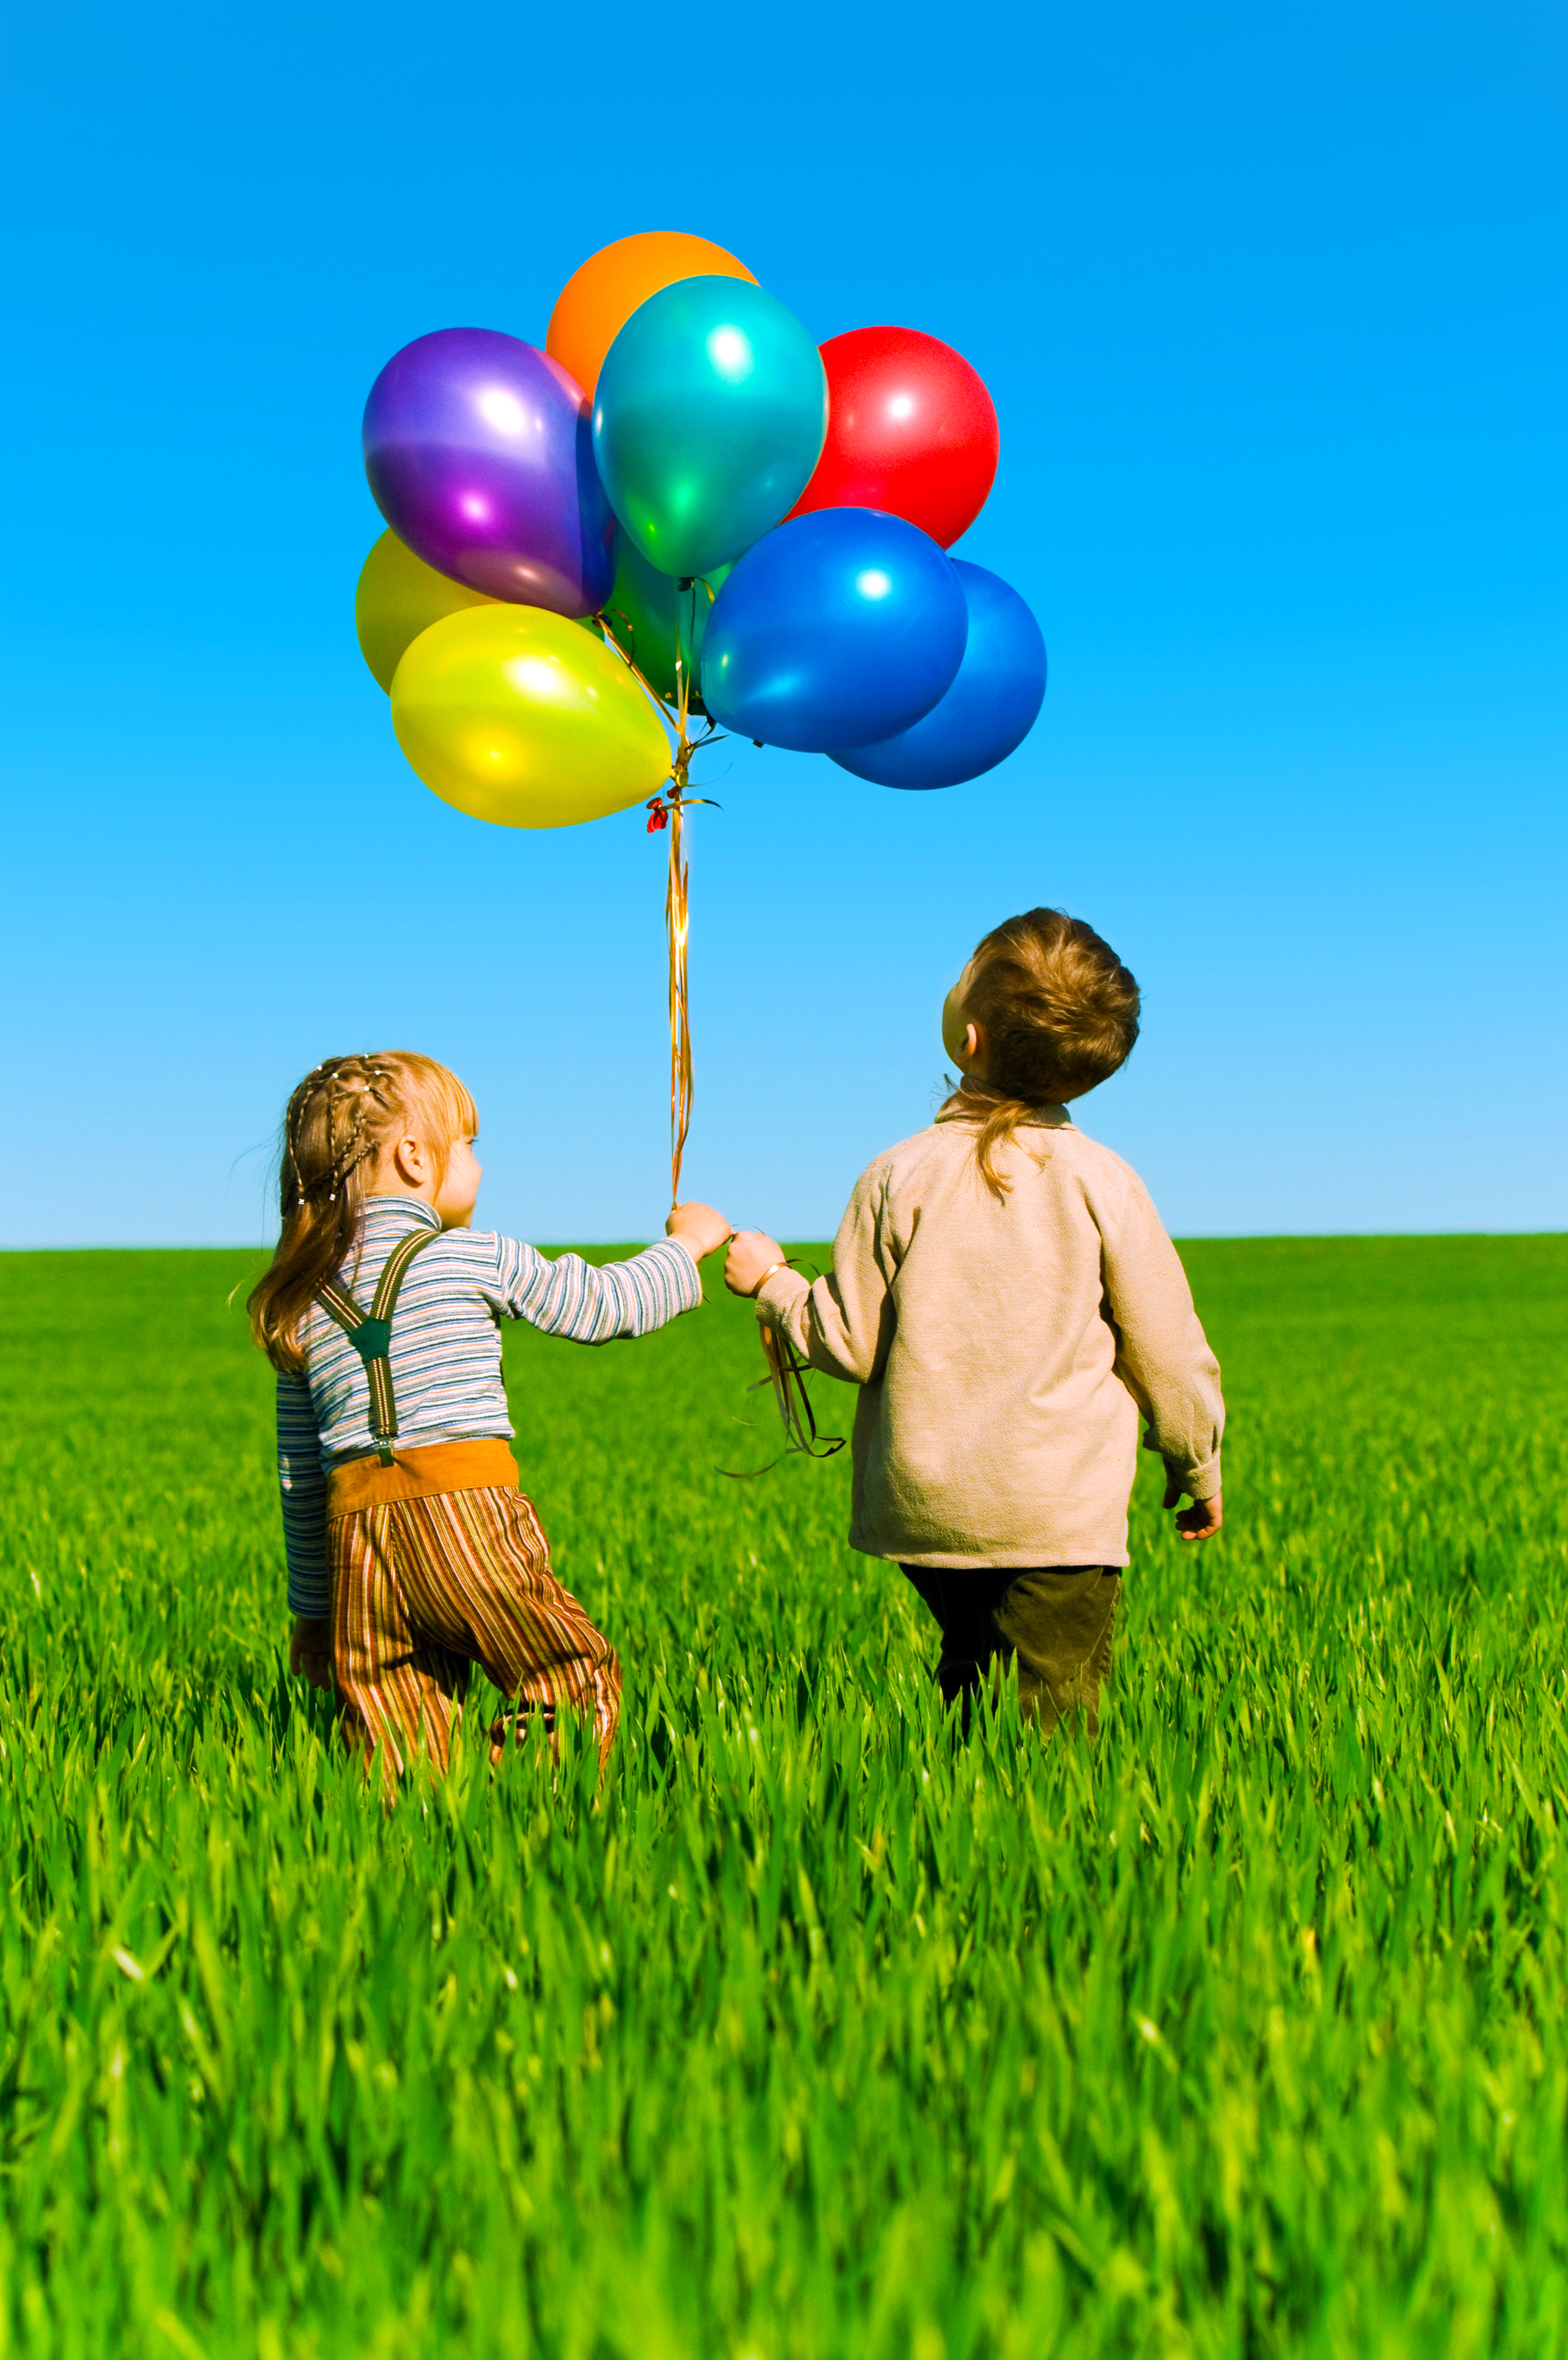 This Sabbath, Pastor Jenn Ogden speaks on the theme of inter-generational mentorship. The balloons on the platform are important symbols of these important encounters.